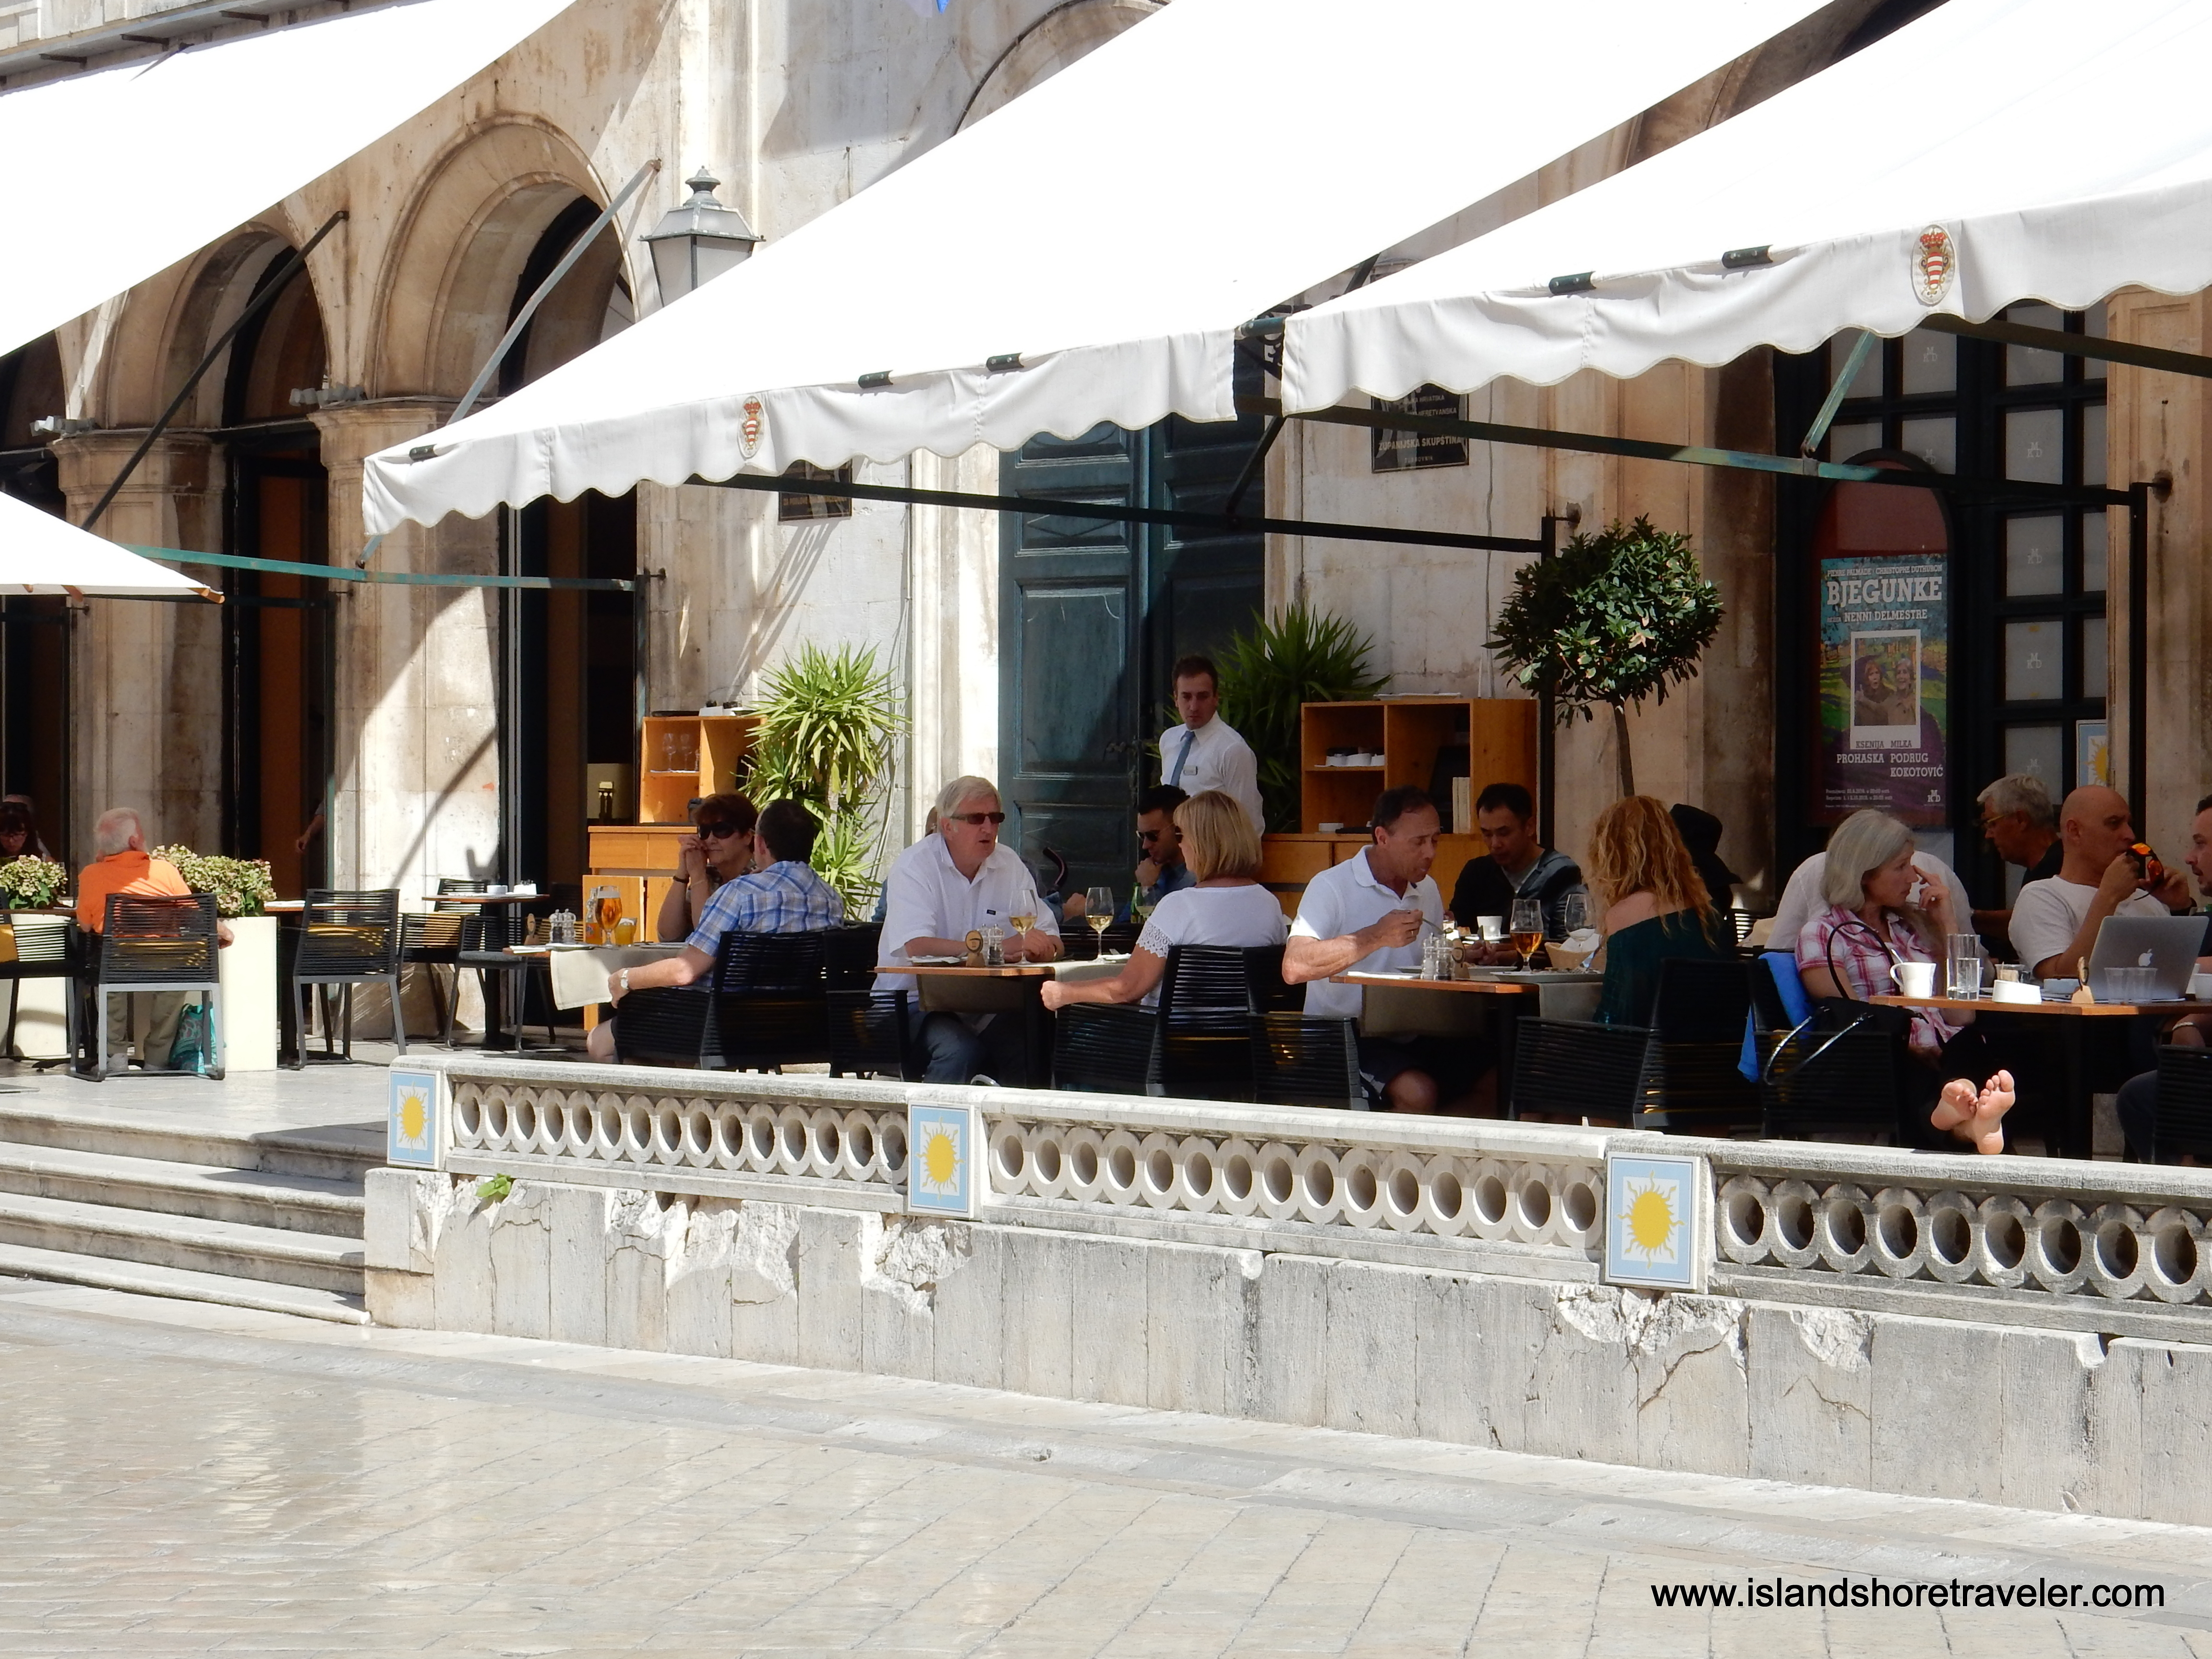 Sidewalk Café along the Stradun in Dubrovnik